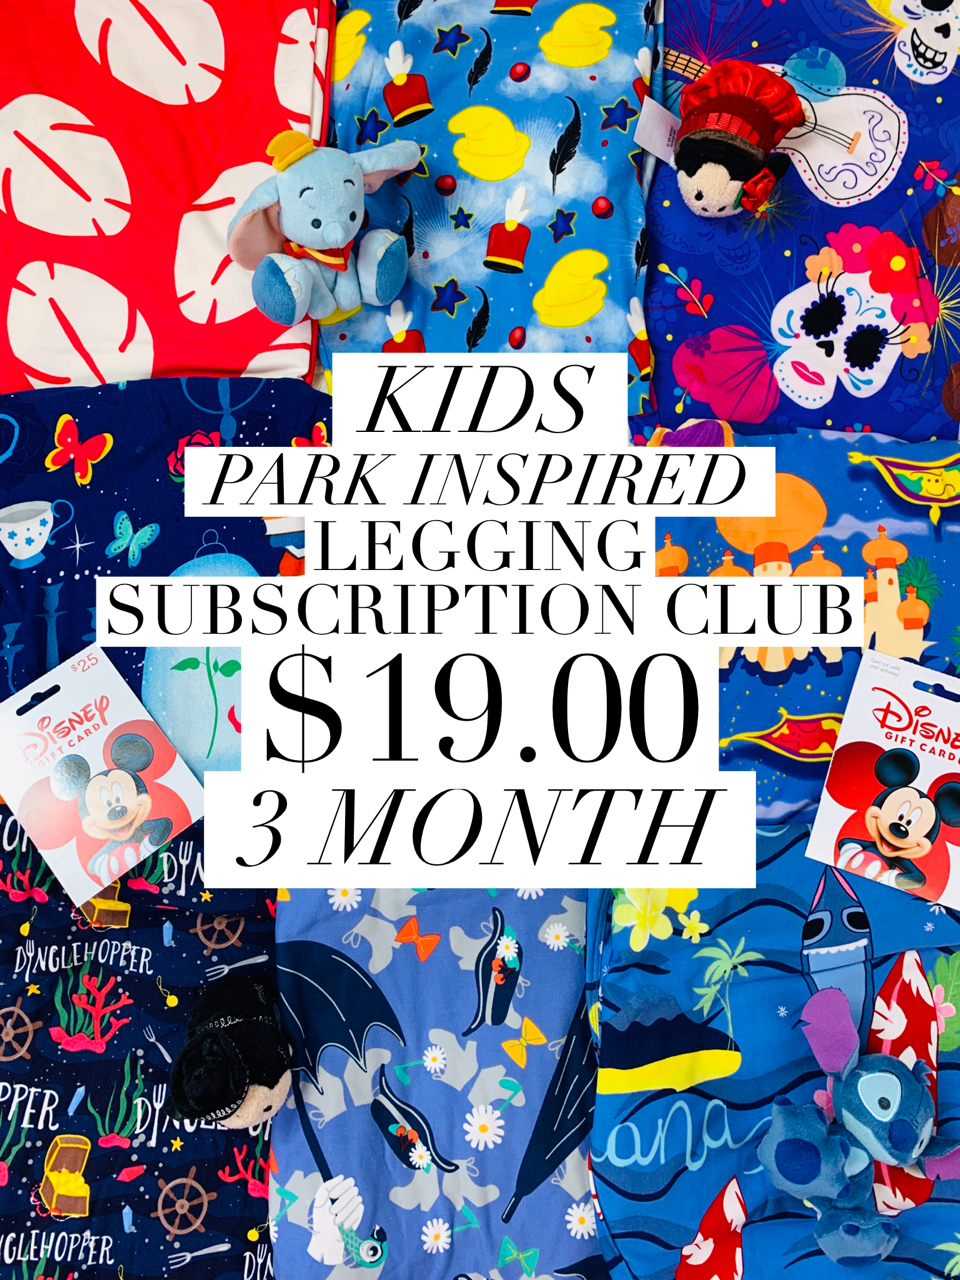 Kids Park Inspired Leggings Subscription Club - 3 Month Subscription - Ambrie